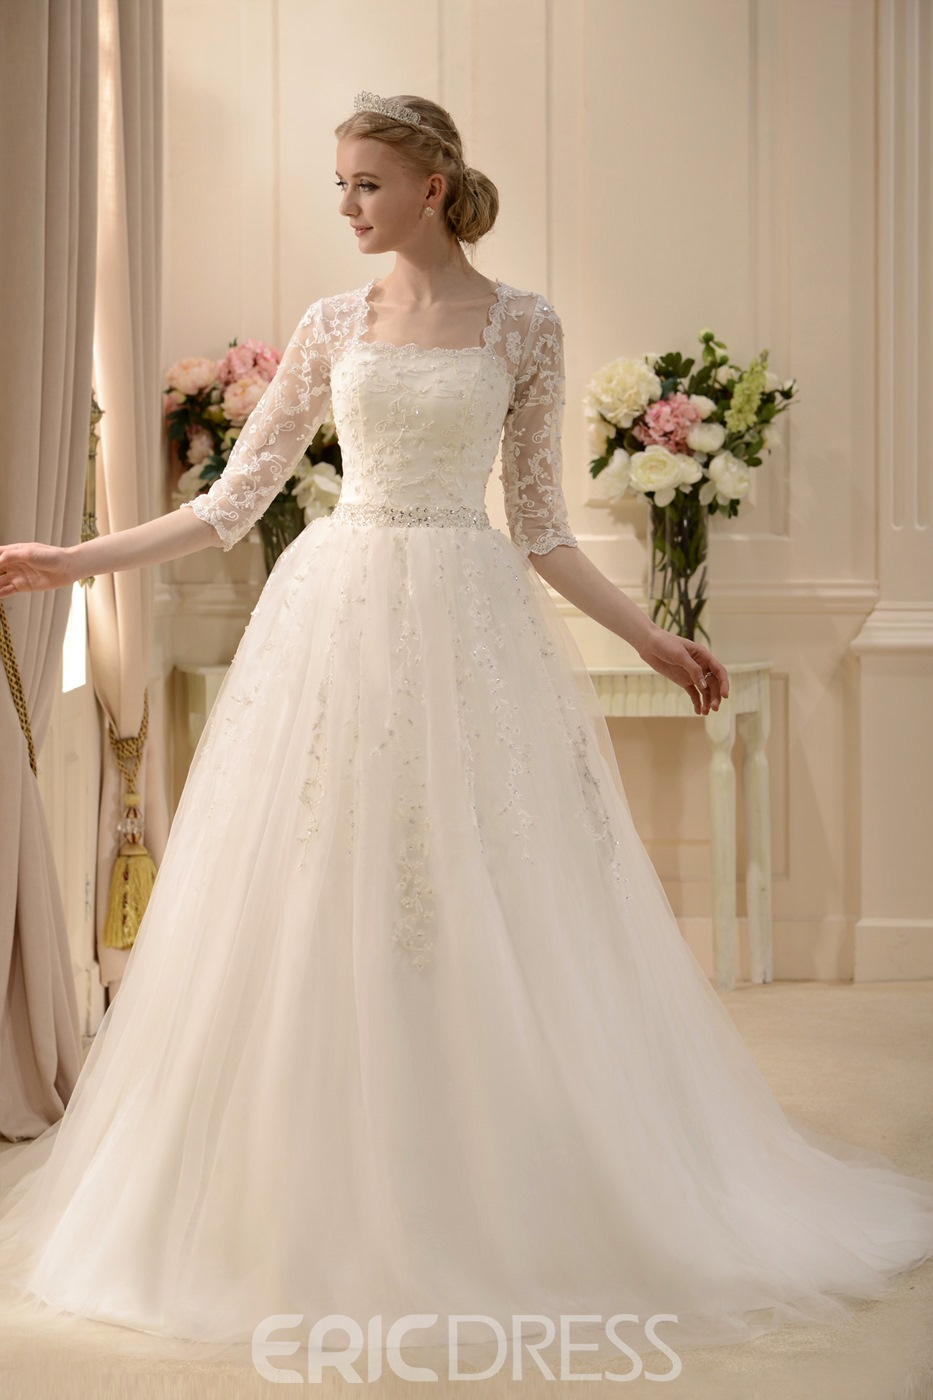 Elaborate A-line Square 3/4-Length Sleeves Floor-length Beaded Wedding Dress